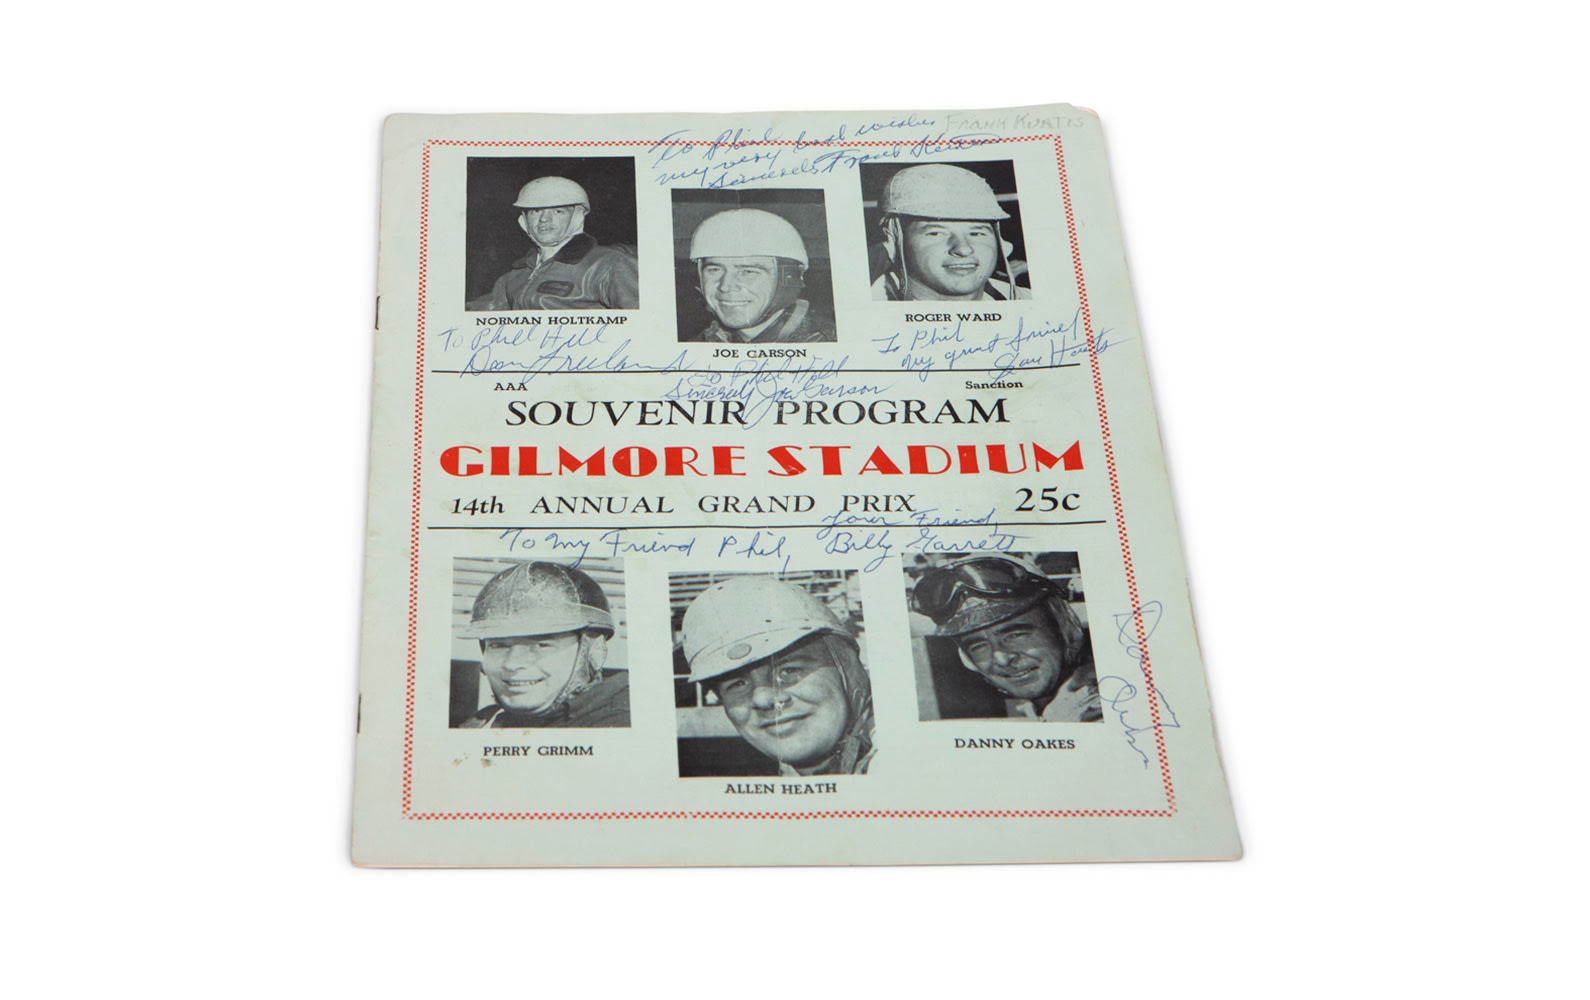 1950 AAA Yearbook with Gilmore Stadium (Autographed) and Carrell Speedway Programs